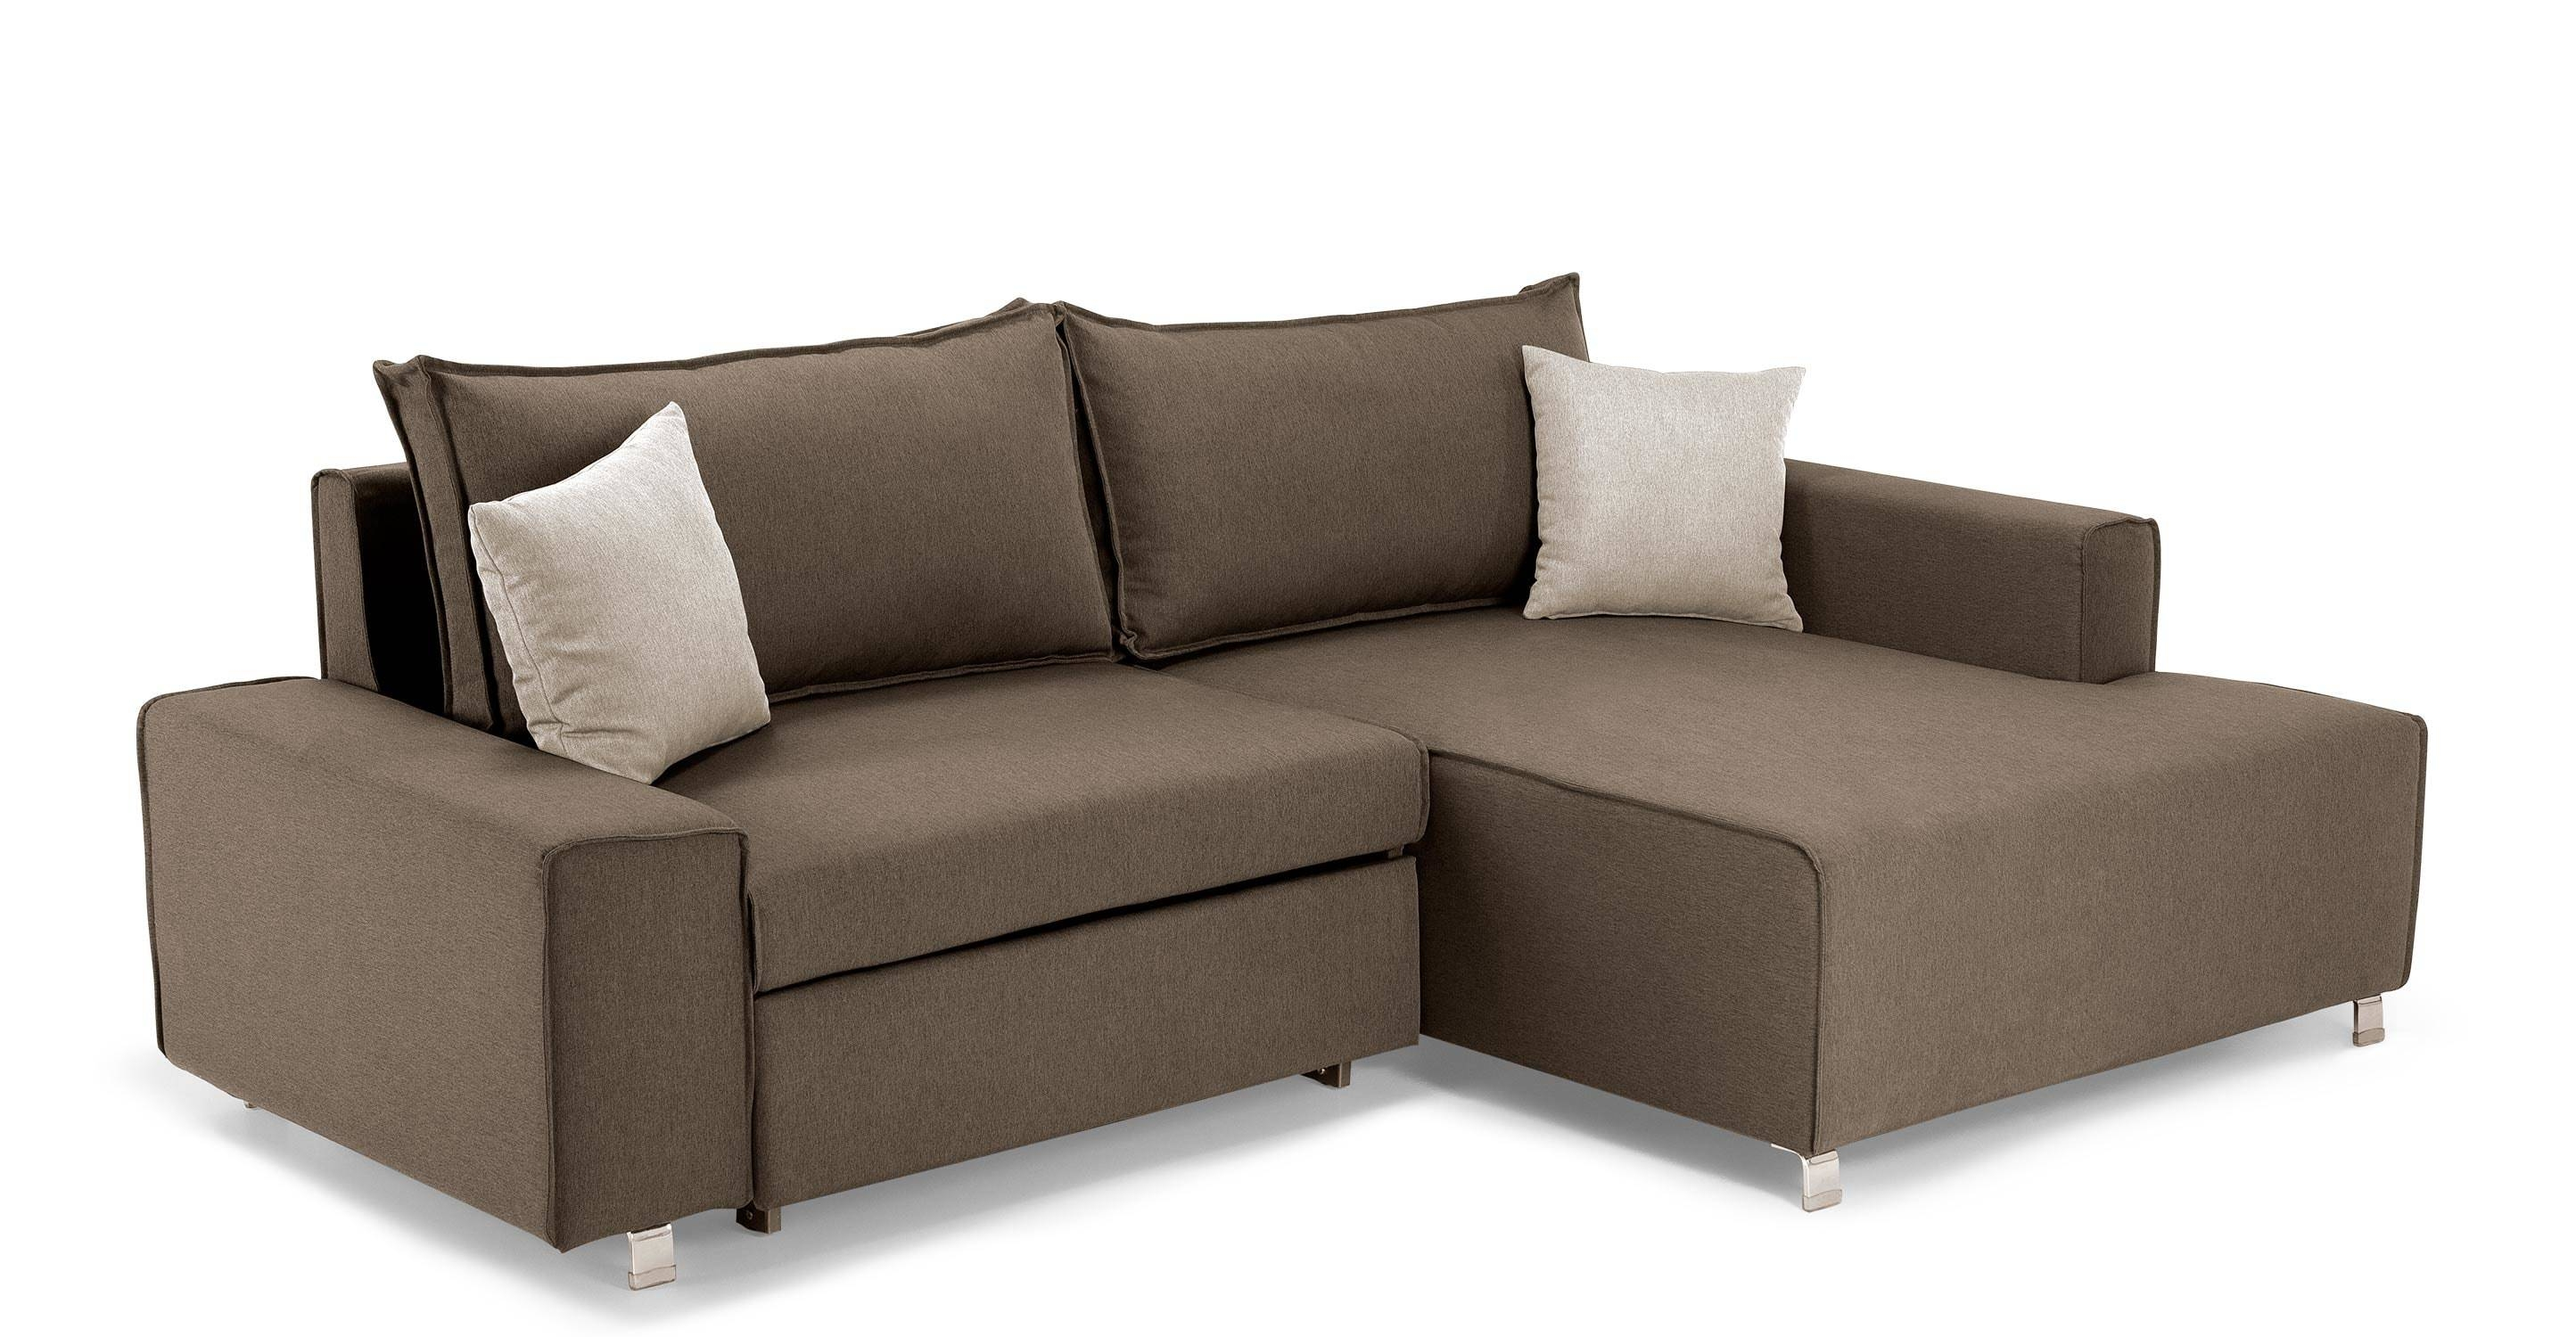 Sofas Center : Corner Sofa Beds Uk Cheap Birminghamcorner For With Cheap Corner Sofa (View 26 of 30)